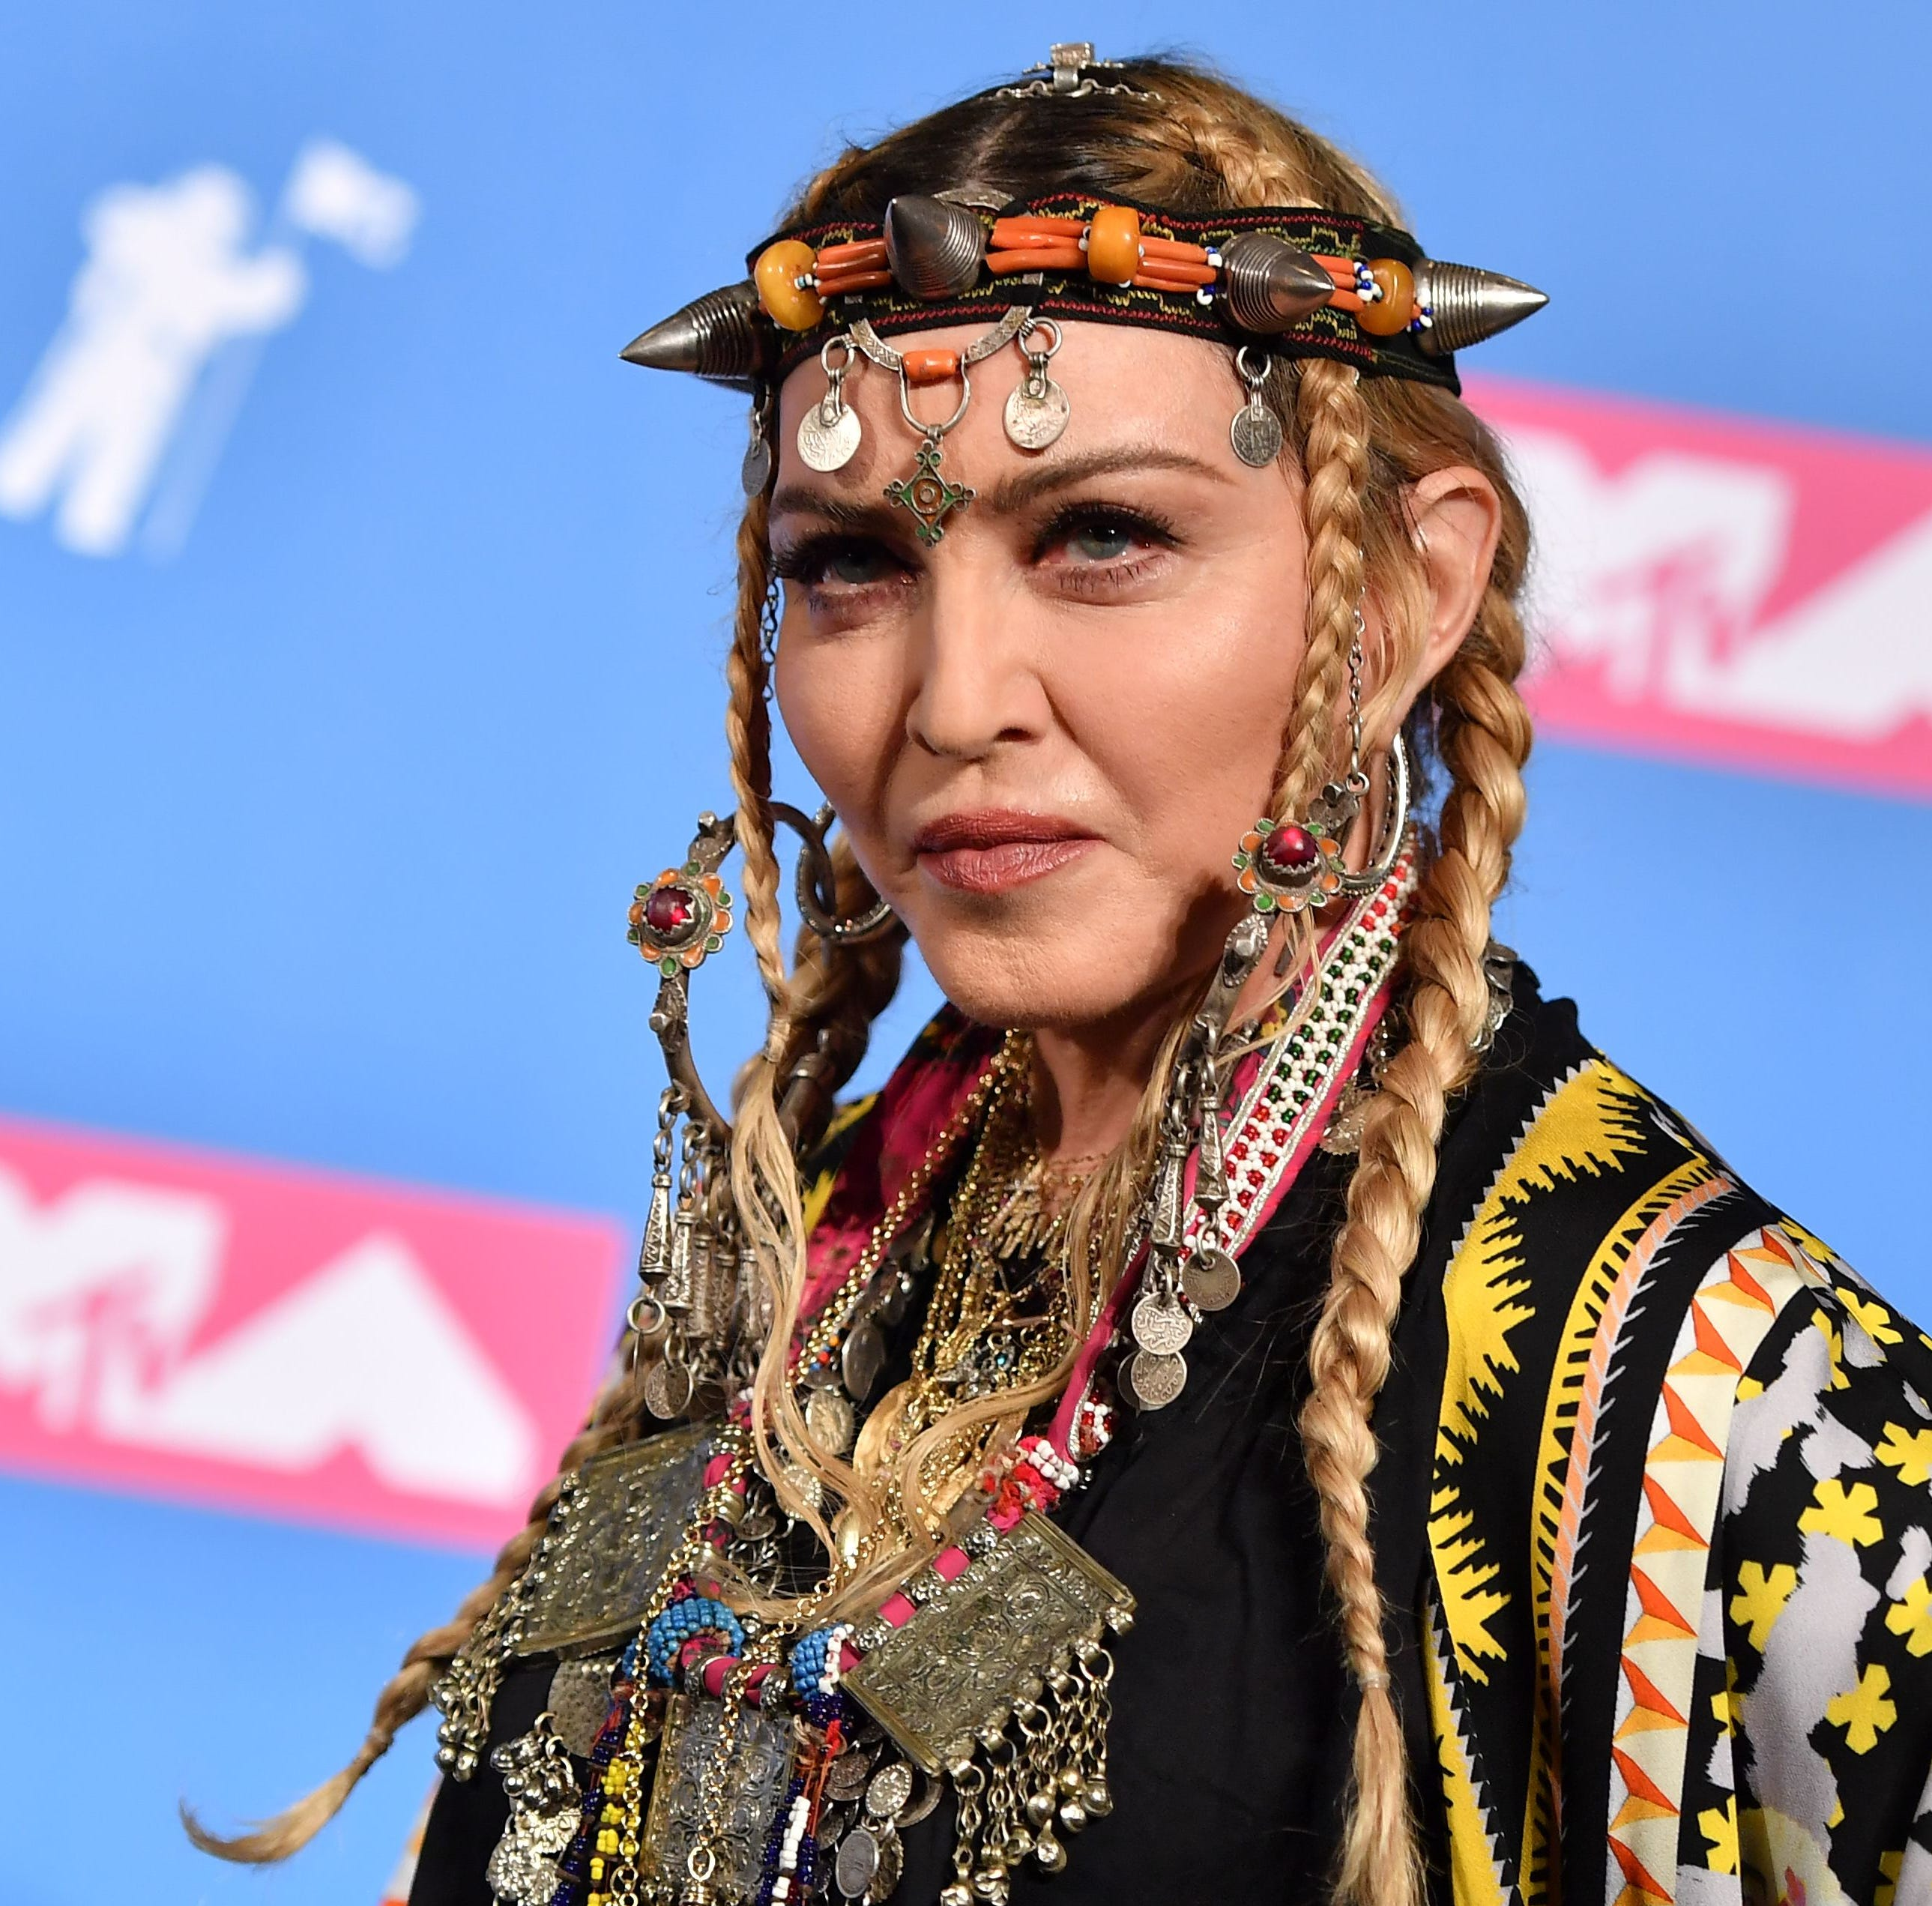 Madonna pays tribute to Aretha Franklin at MTV Video Music Awards